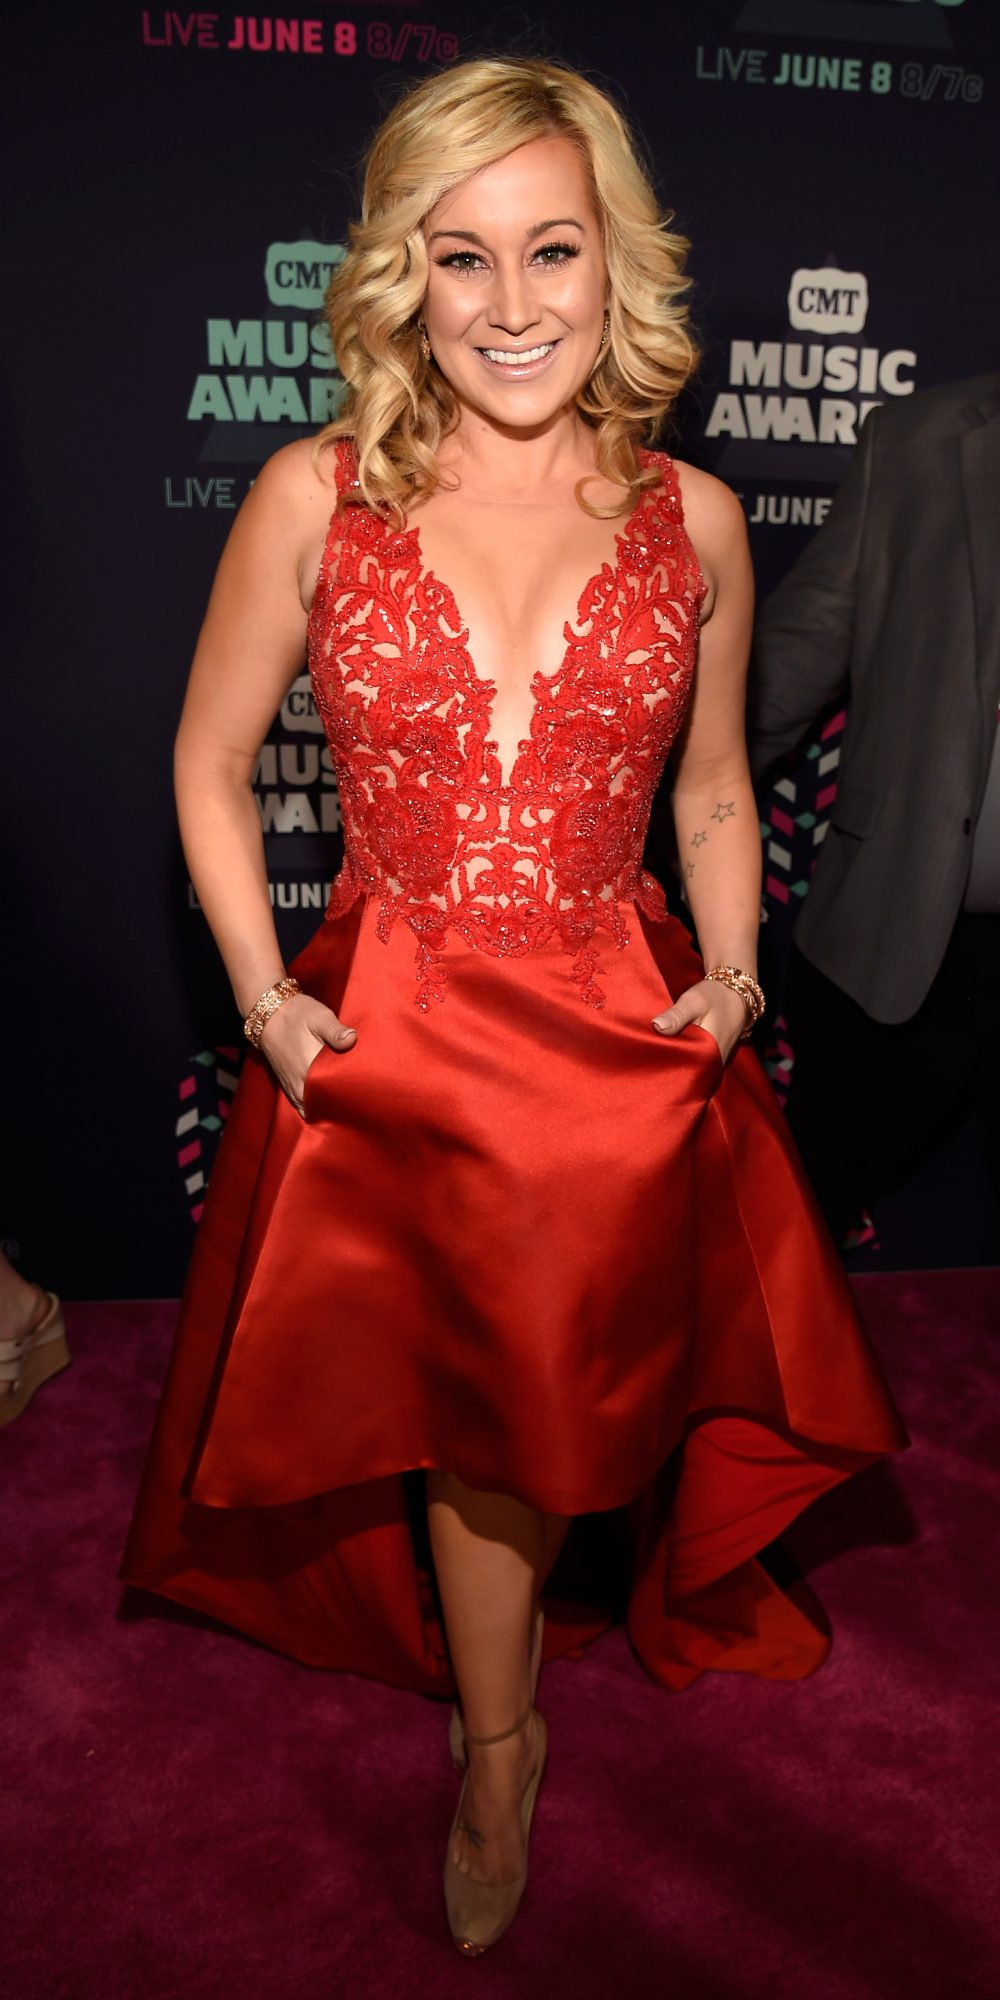 <p>Kellie Pickler</p>